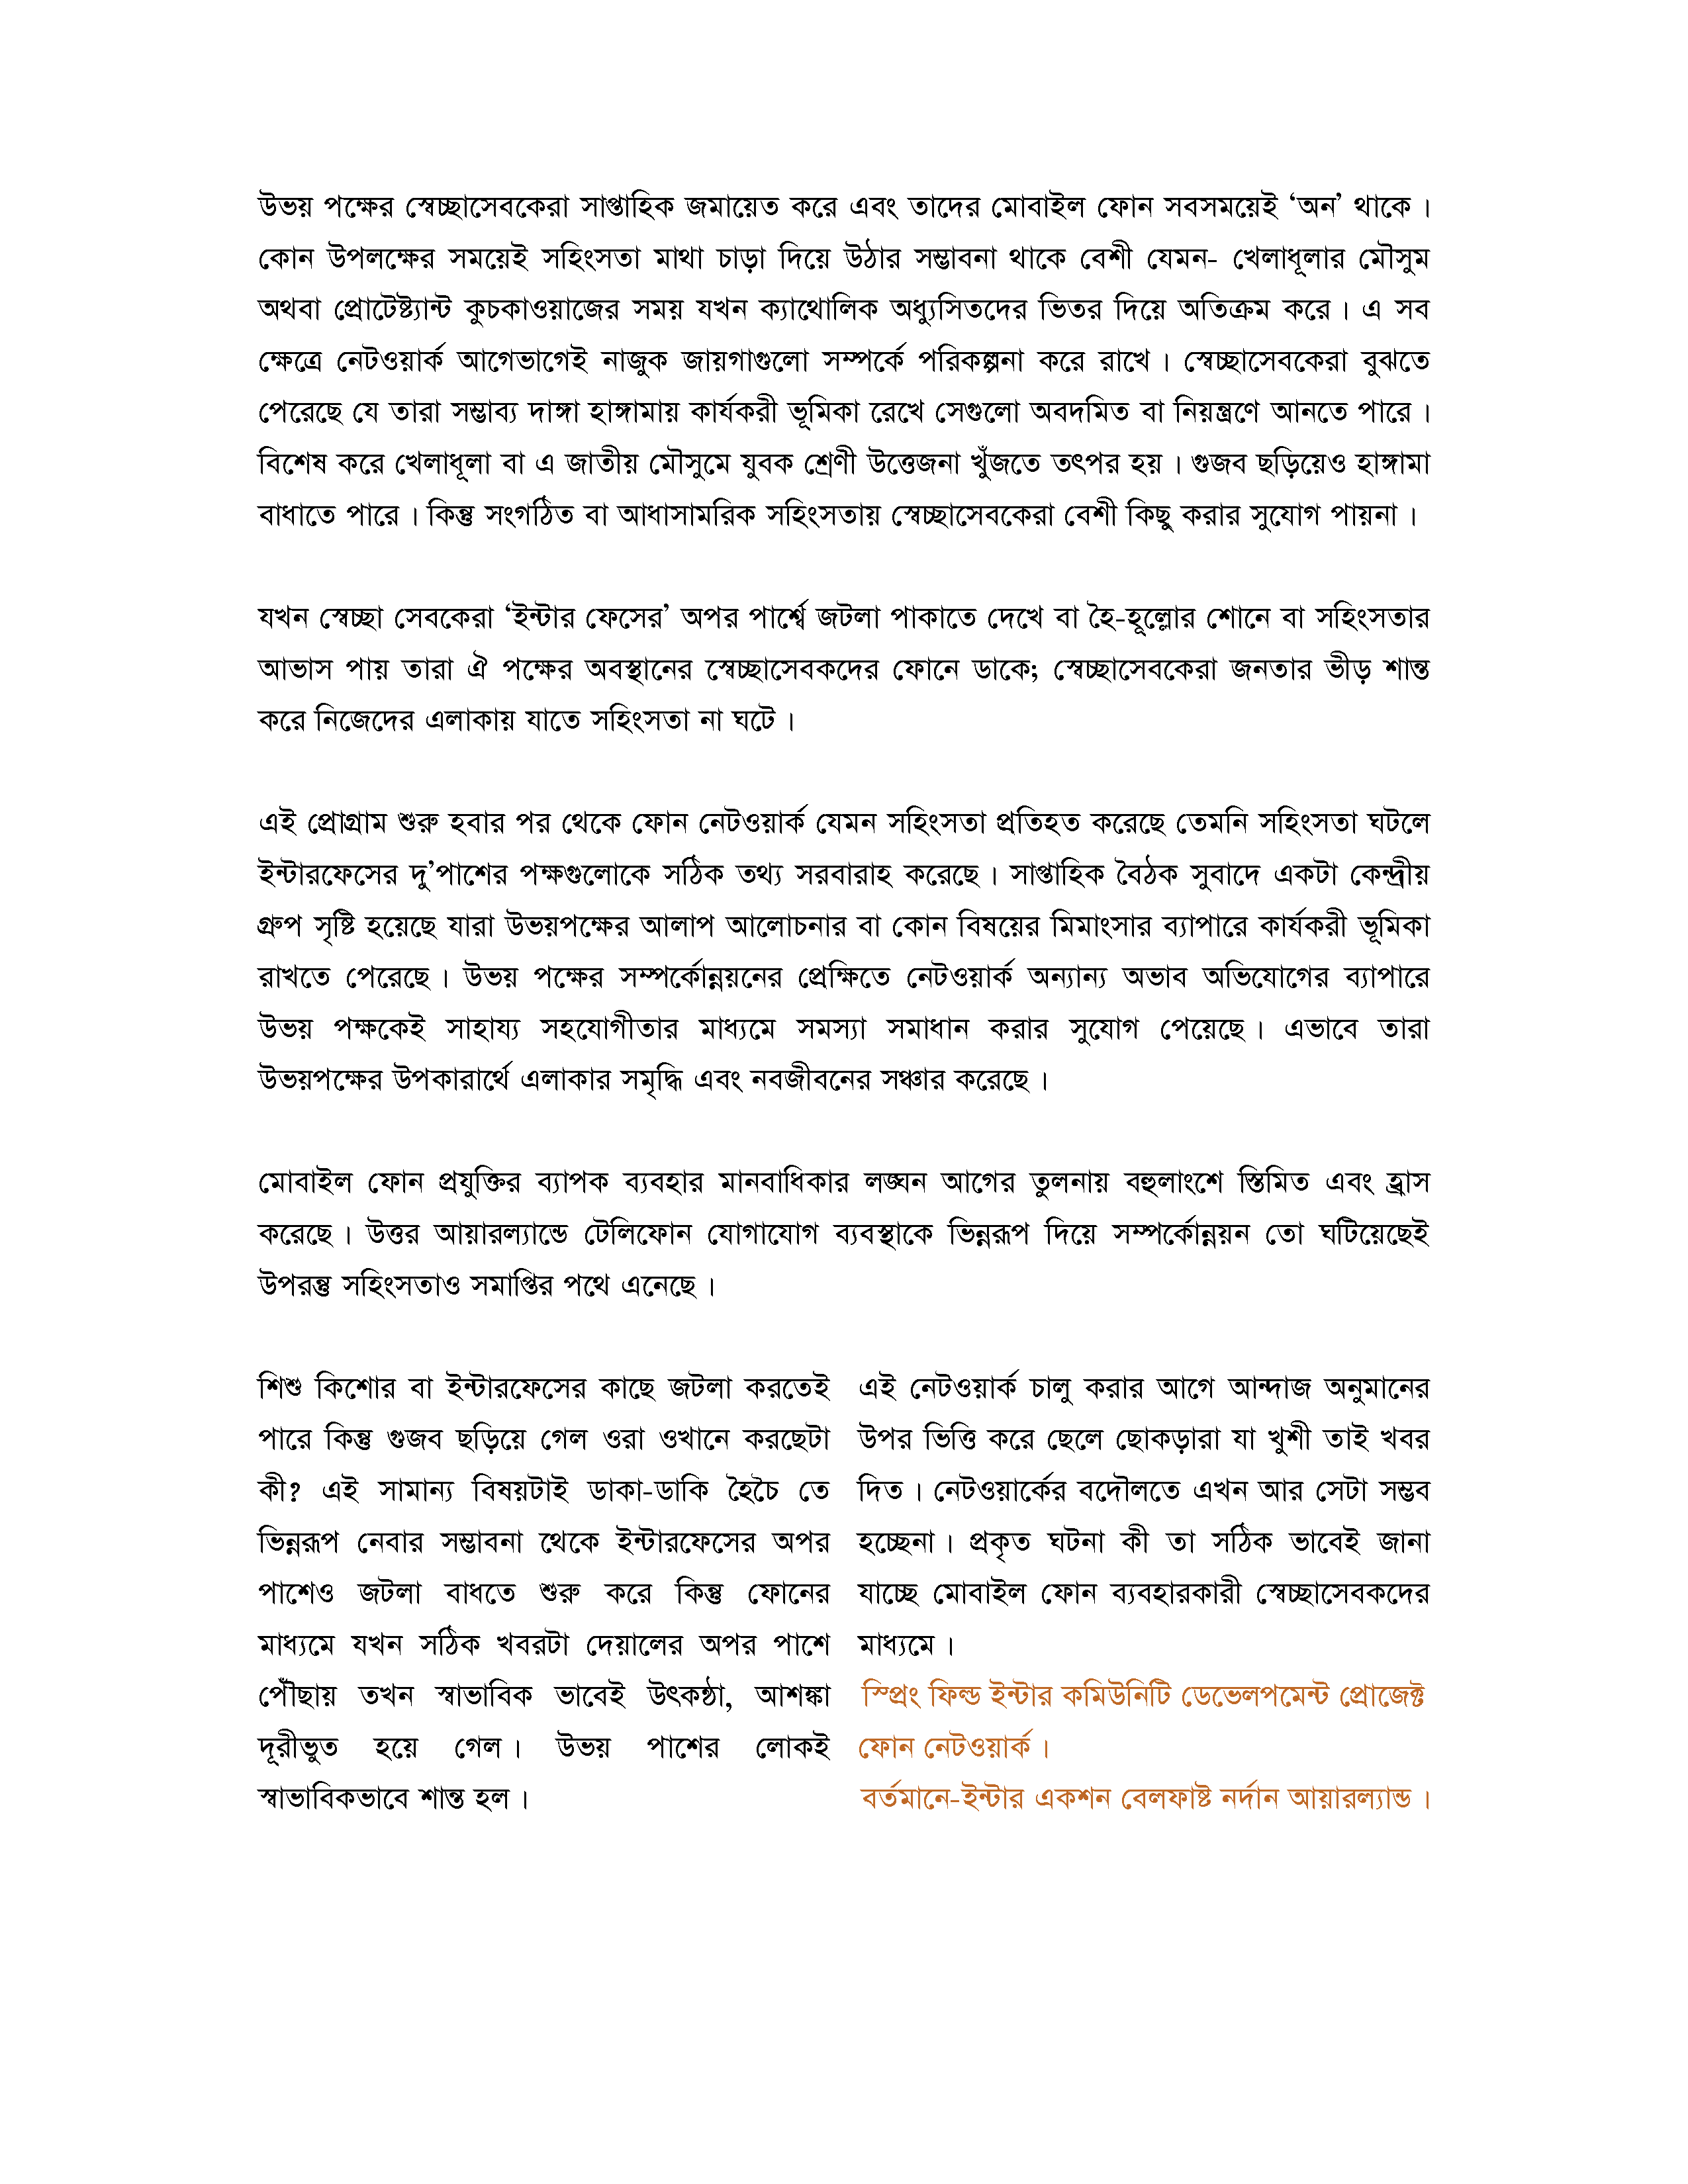 New Tactics in Human Rights: A Resource for Practitioners (Bangla–partial translation)